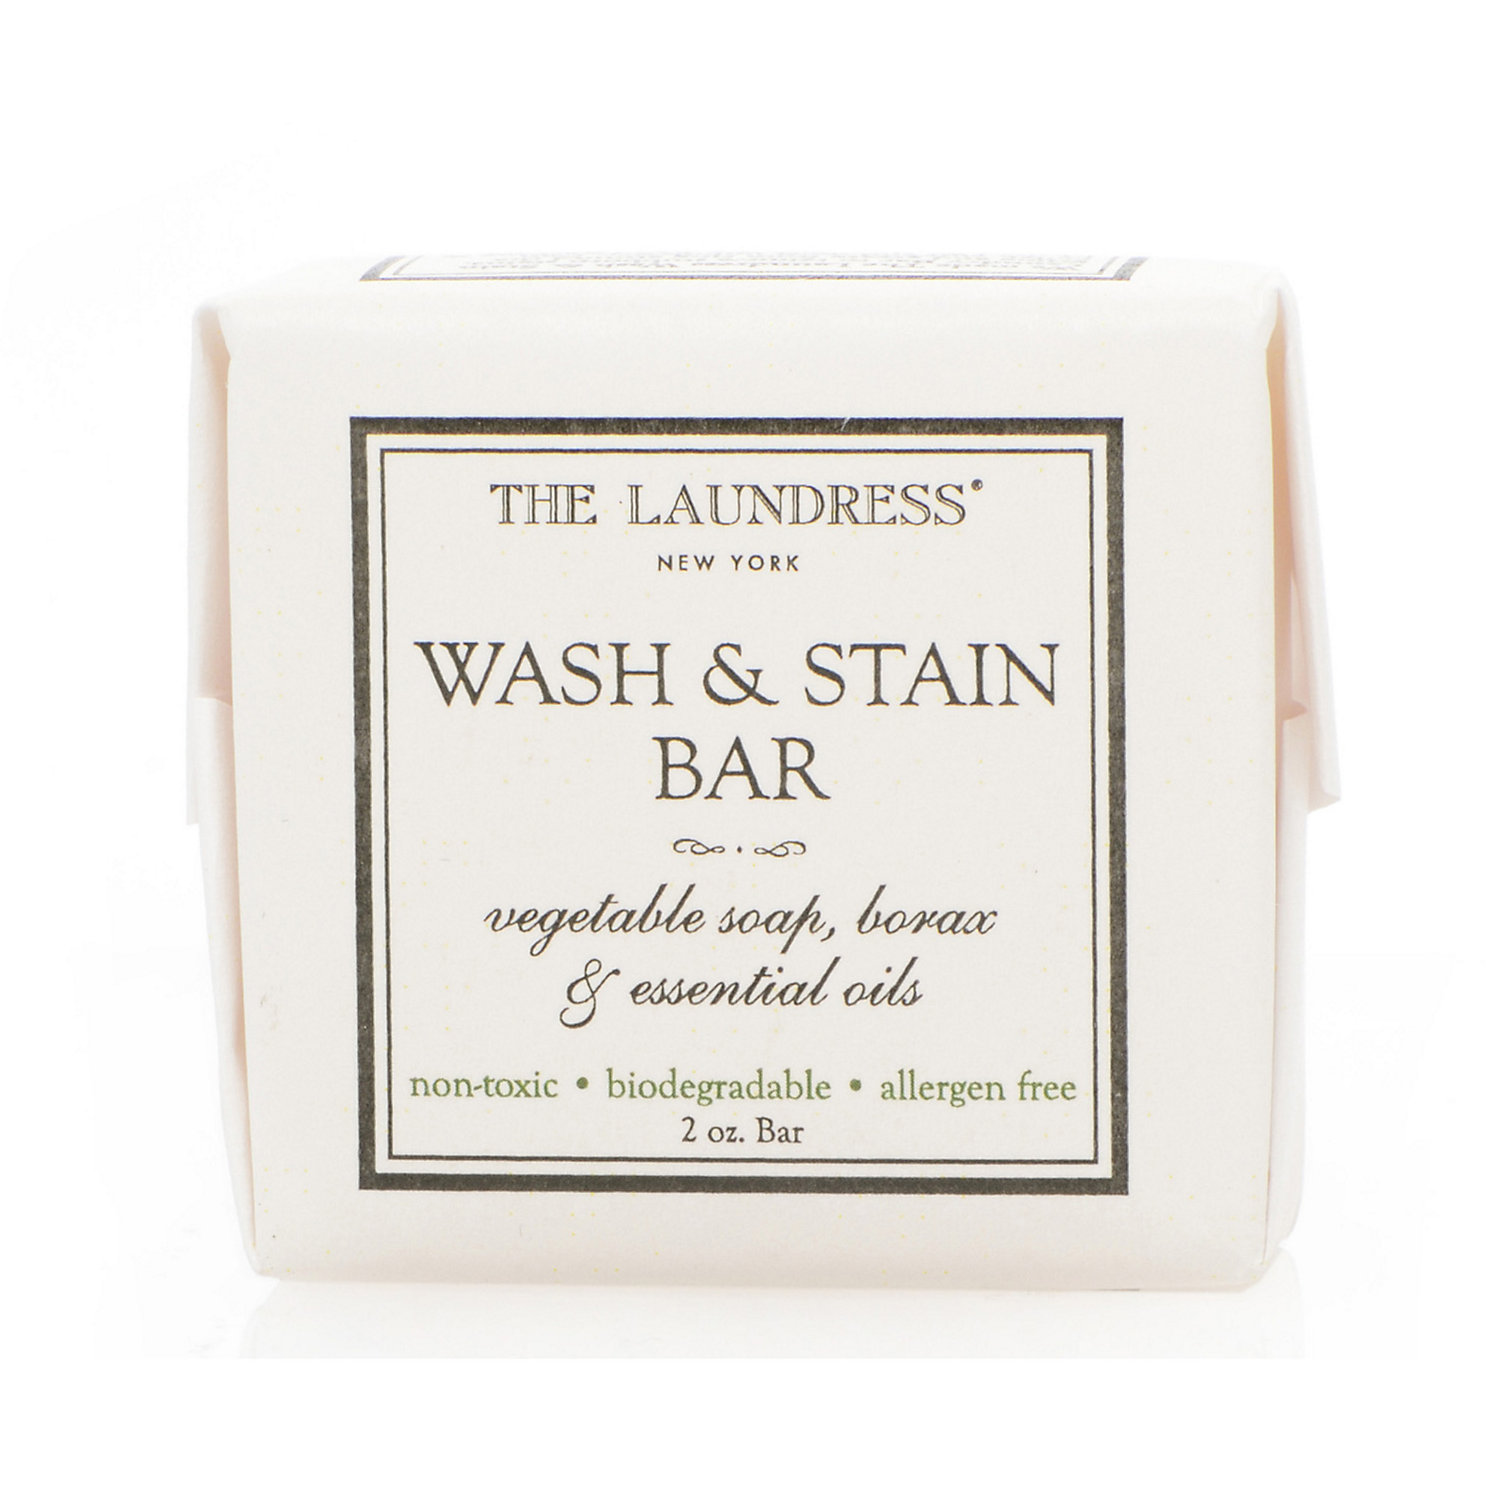 The Laundress Upc Amp Barcode Upcitemdb Com